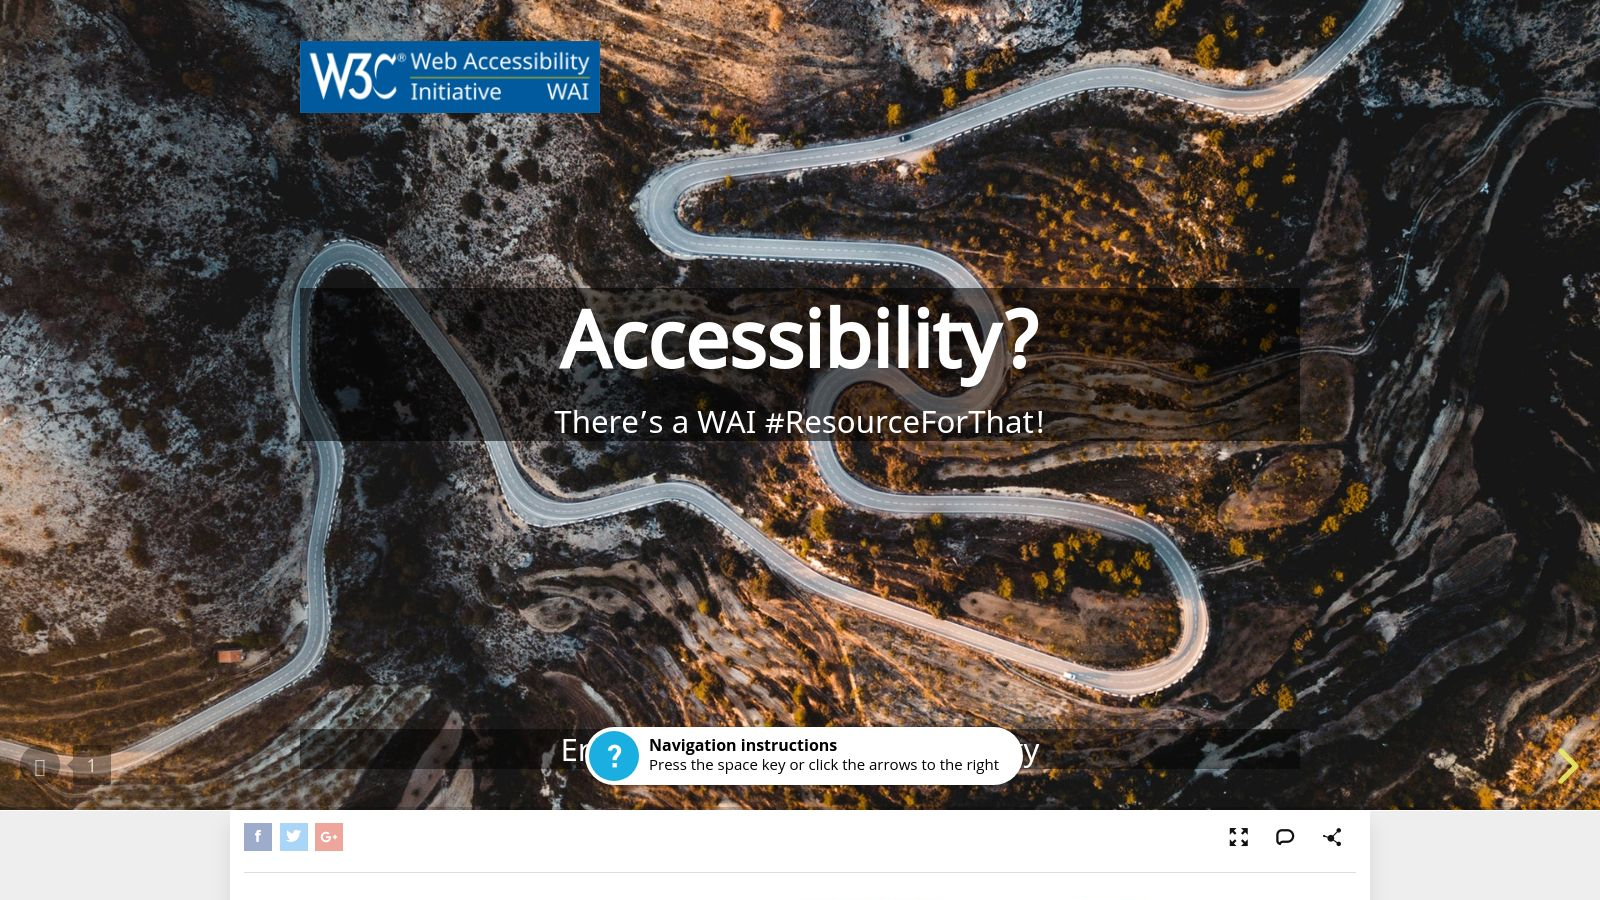 Accessibility? There's a WAI #ResourceForThat!